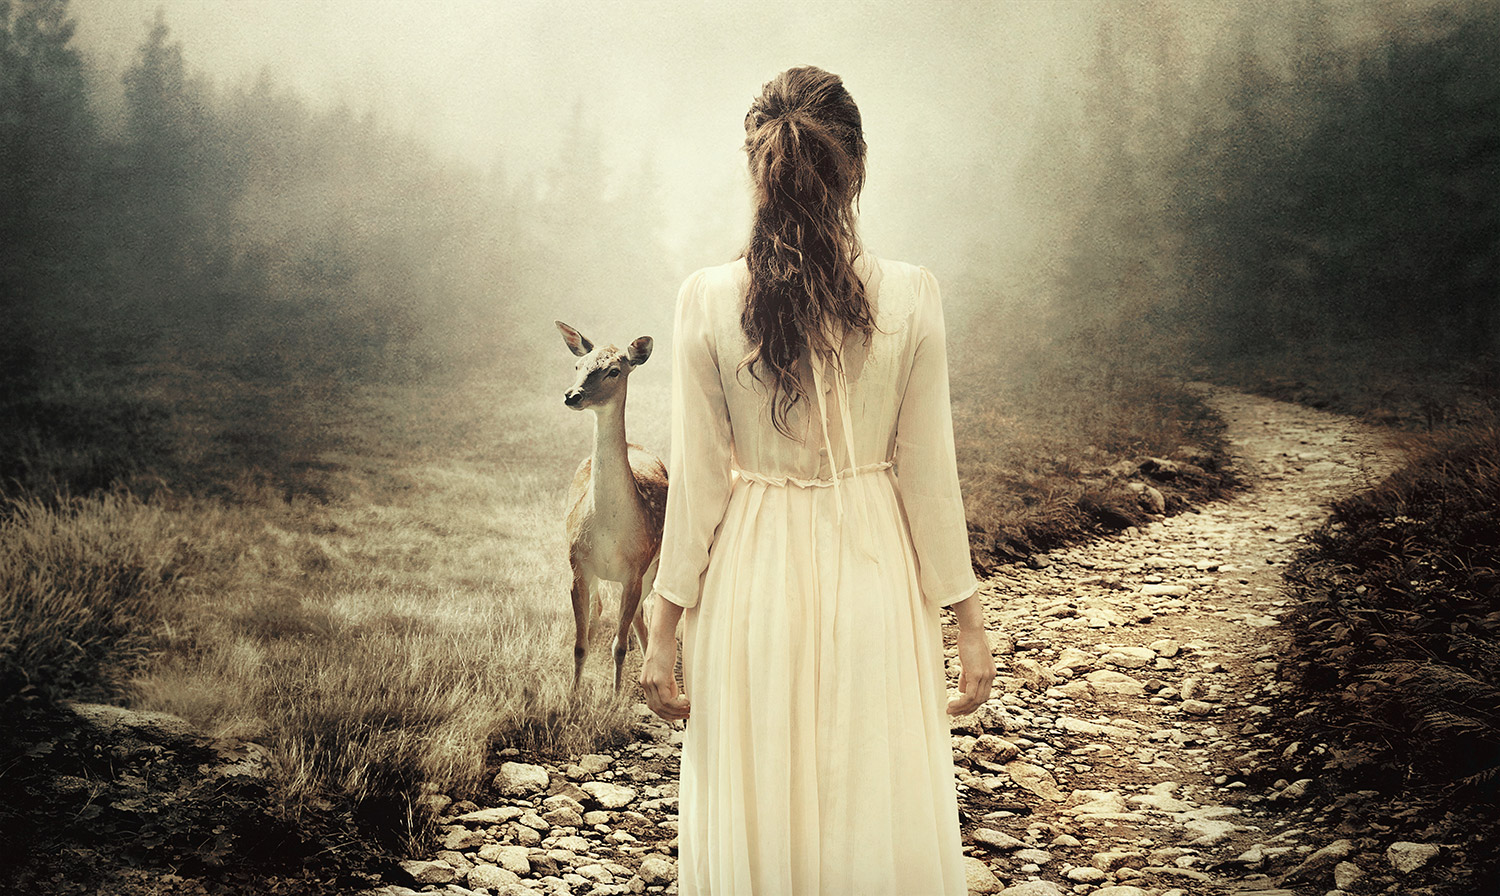 Martin Stranka - It Is You